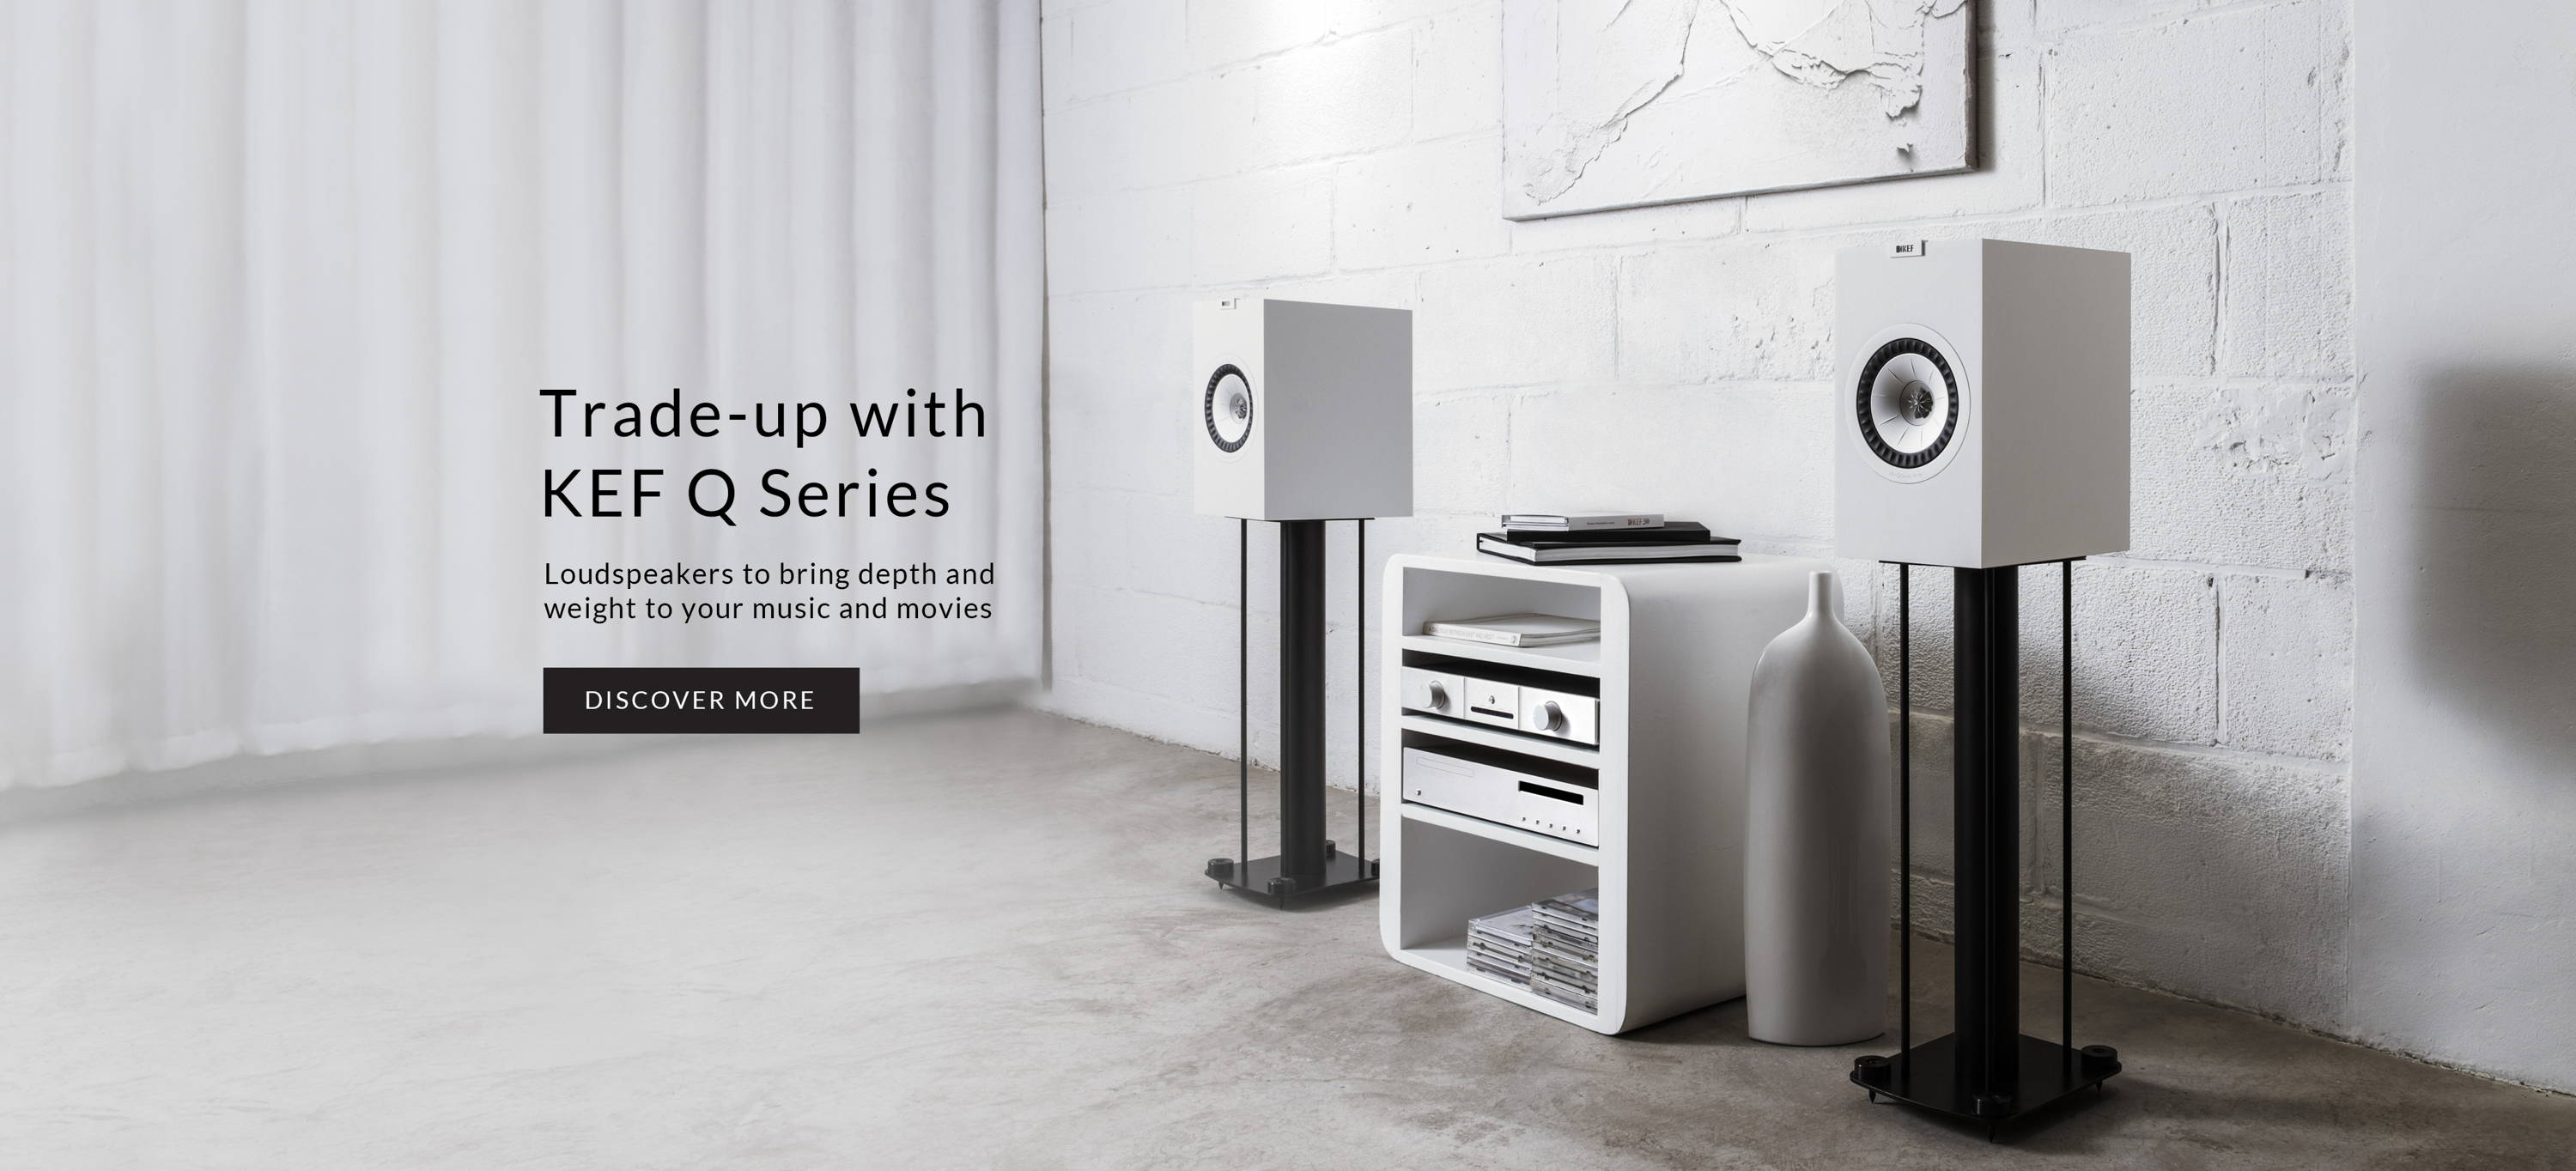 Trade up with KEF Q series